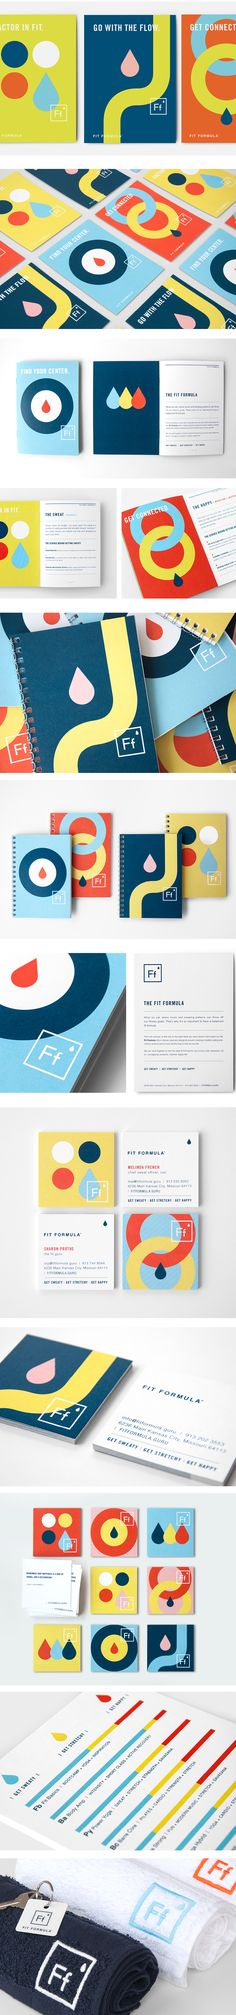 Fit Formula | Branding Copywriting Design Illustration Interior Integration…